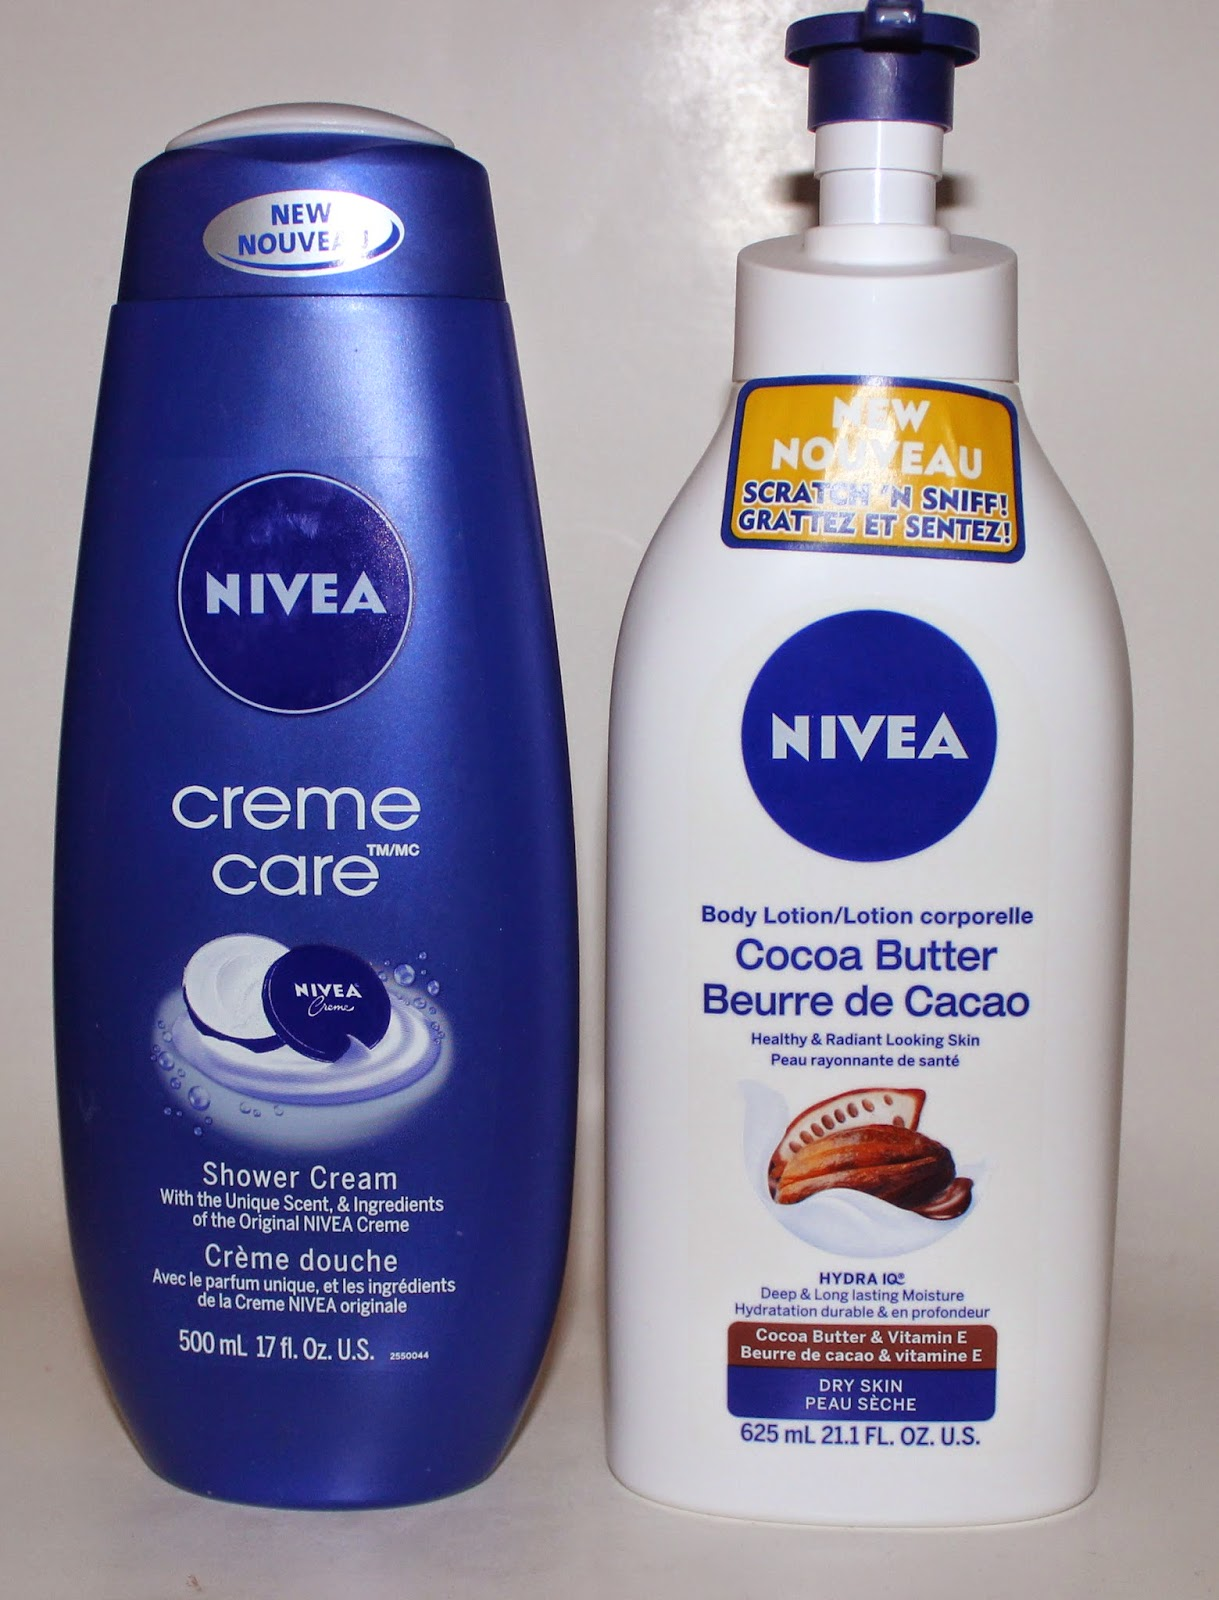 Nivea Creme Care Shower Cream & Cocoa Butter Body Lotion